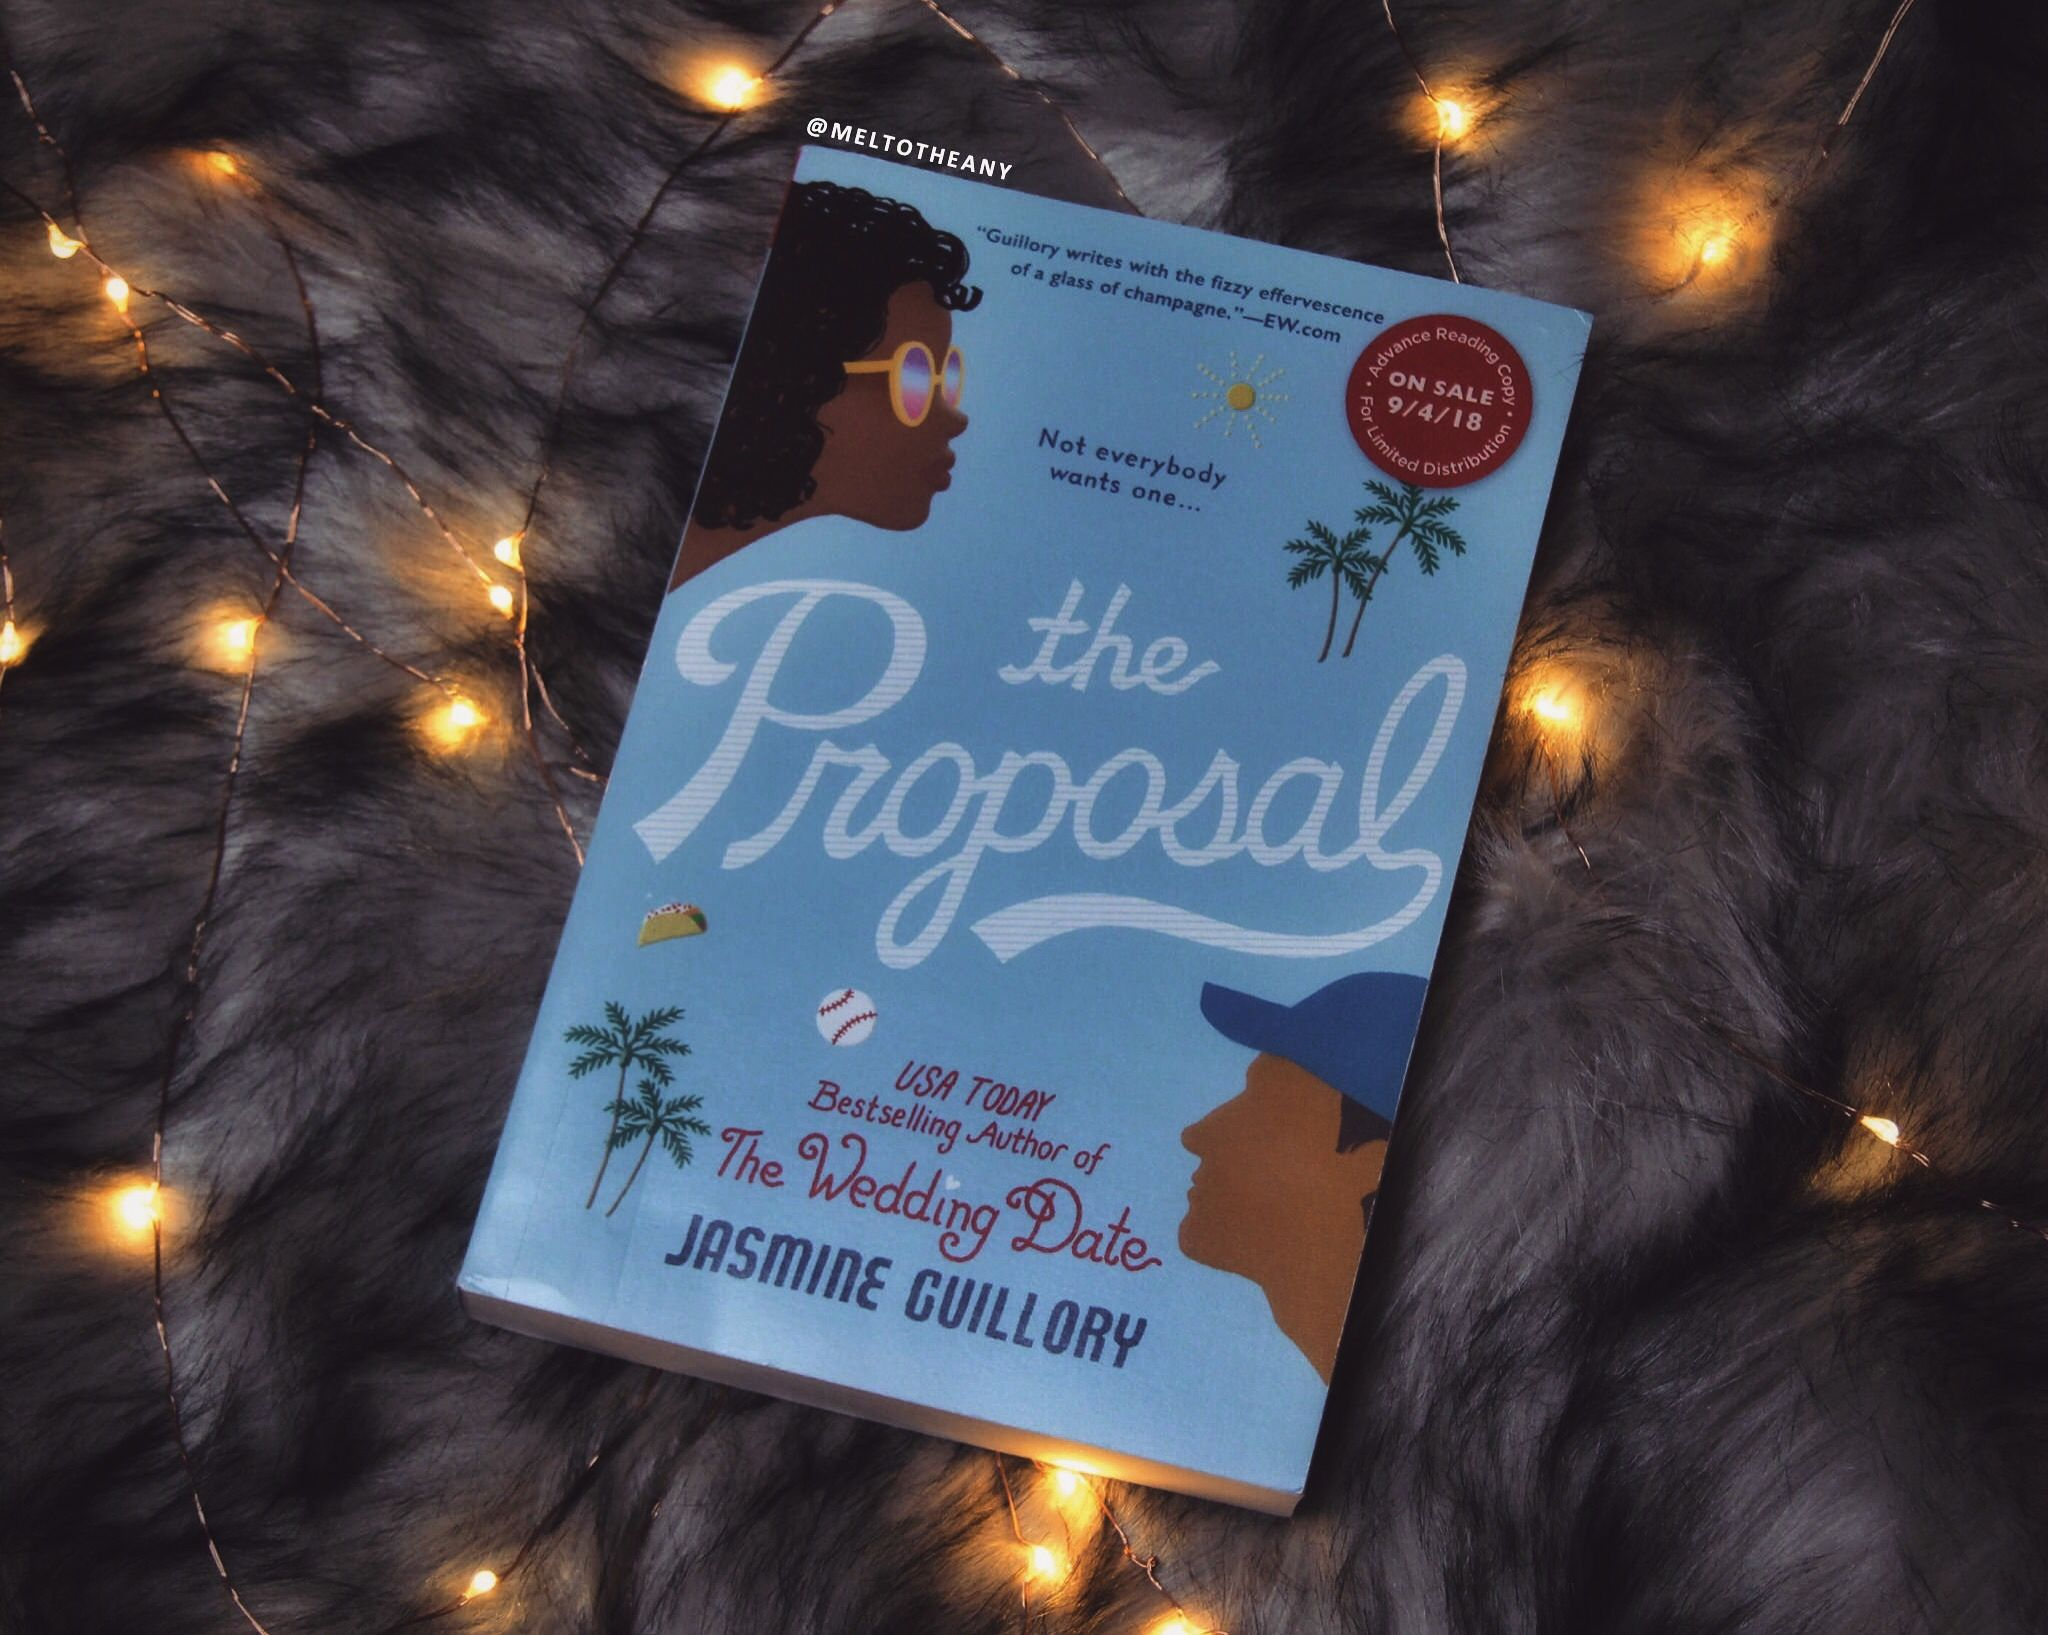 The Proposal by Jasmine Guillory (meltotheany) Reading